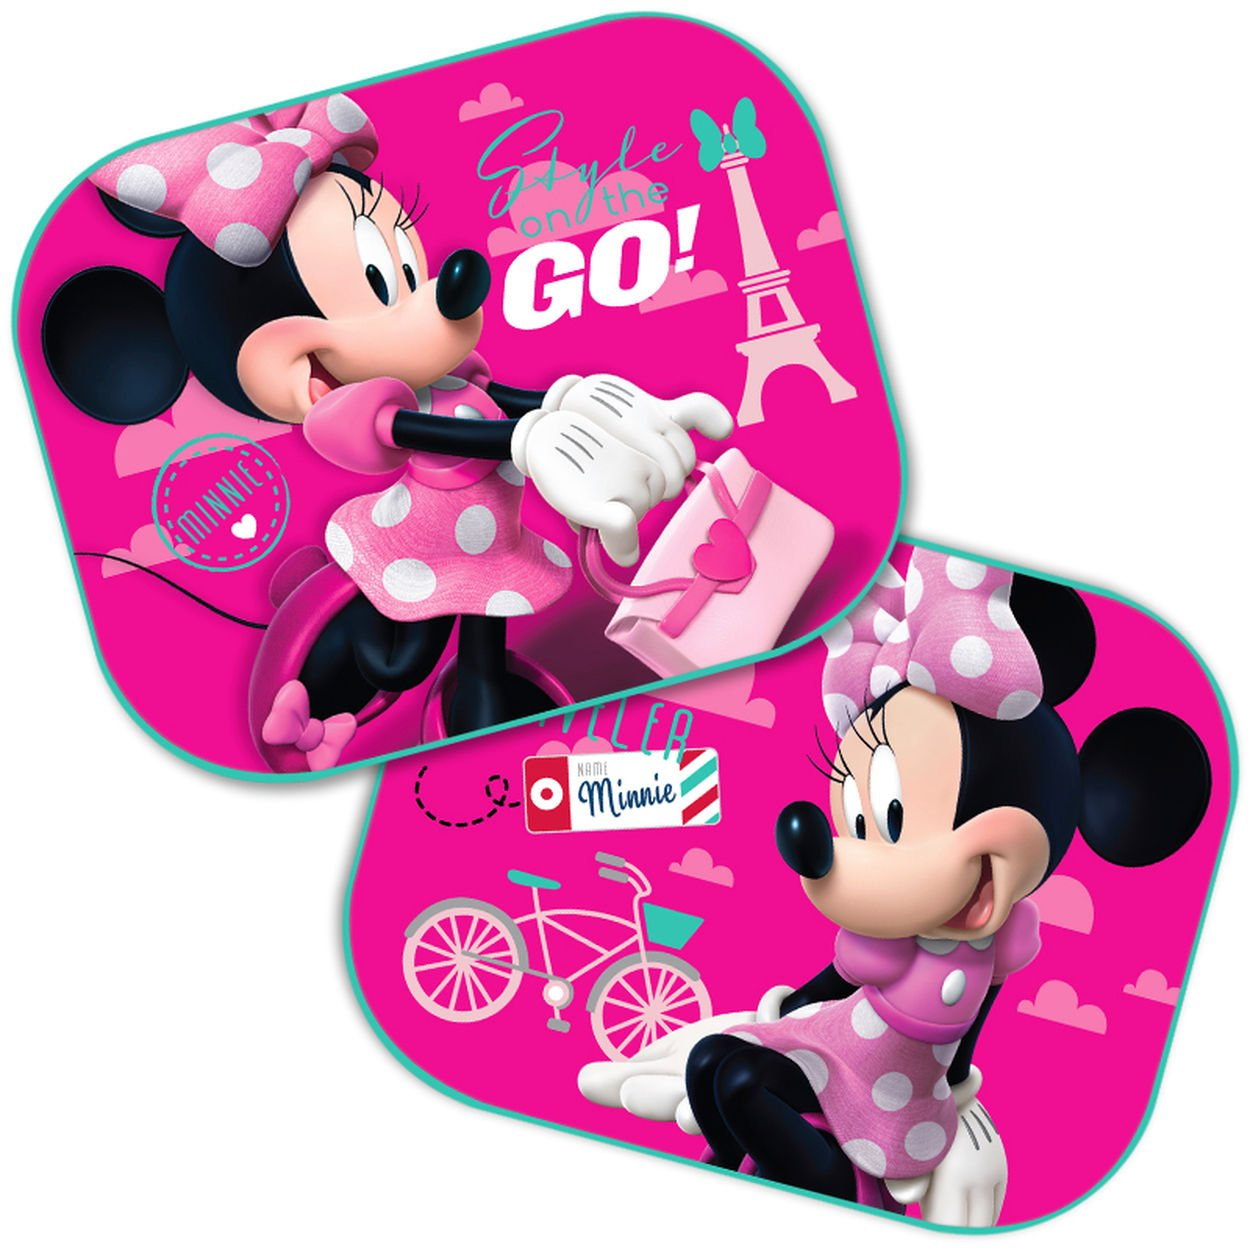 2 x Car Window Sun Shades - Universal Baby Car Sunshades - Blocks Harmful UV Rays Sun Glare Heat - Protection for Your Kids (Minnie Mouse) Sola